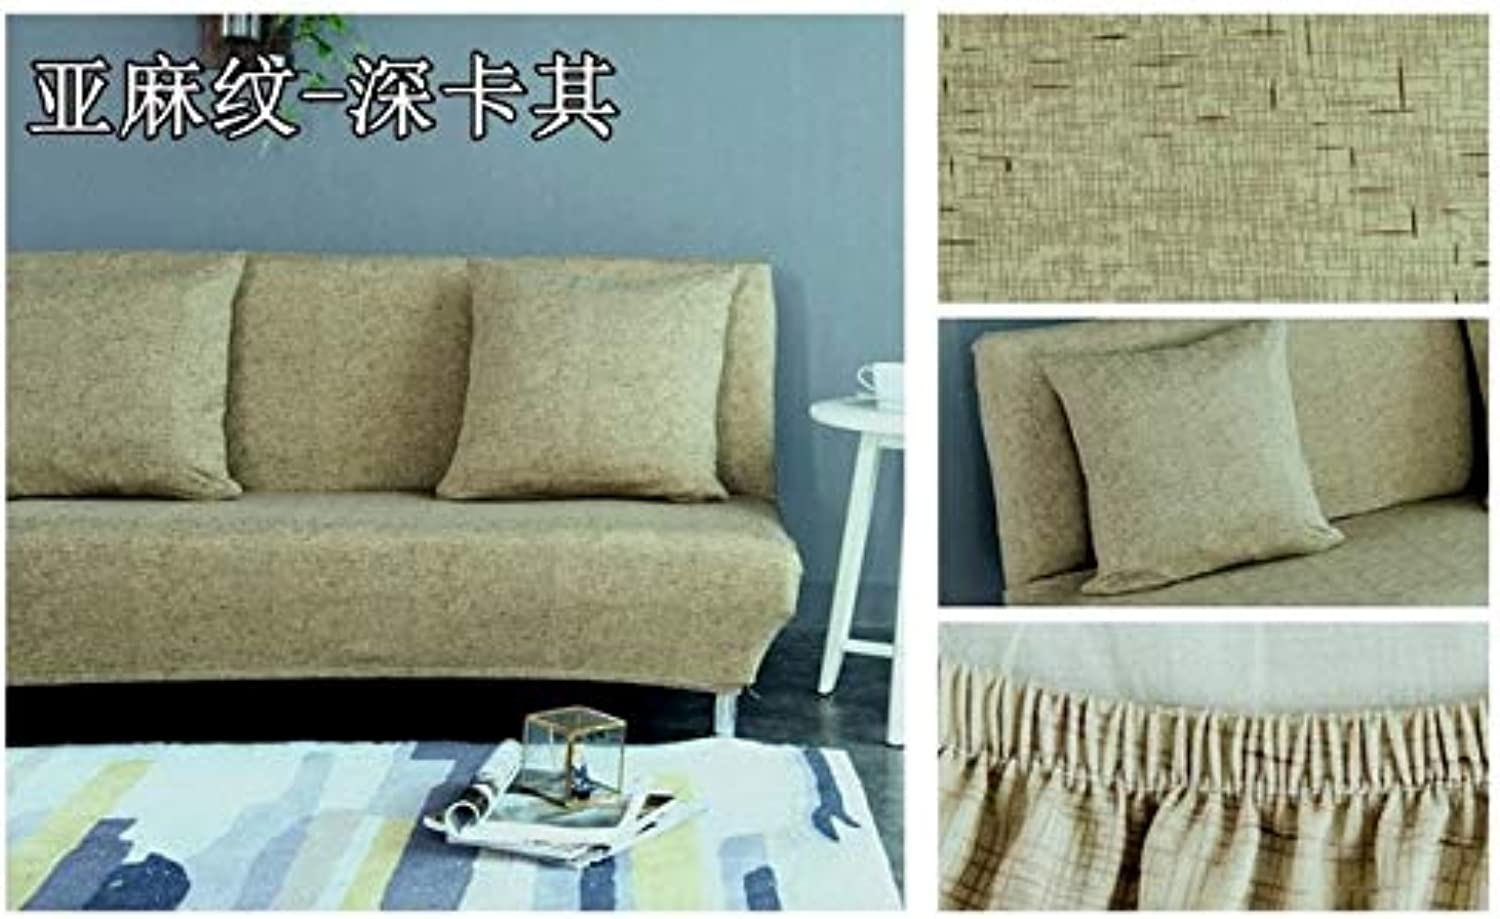 Elastic Sofa Bed Cover Fully Folded Printed Sofa Cover No Armrests Double Elastic Sofa Decor Multi-color Polyester Sofa Cover   Dark Khaki, XL(195-225cm)